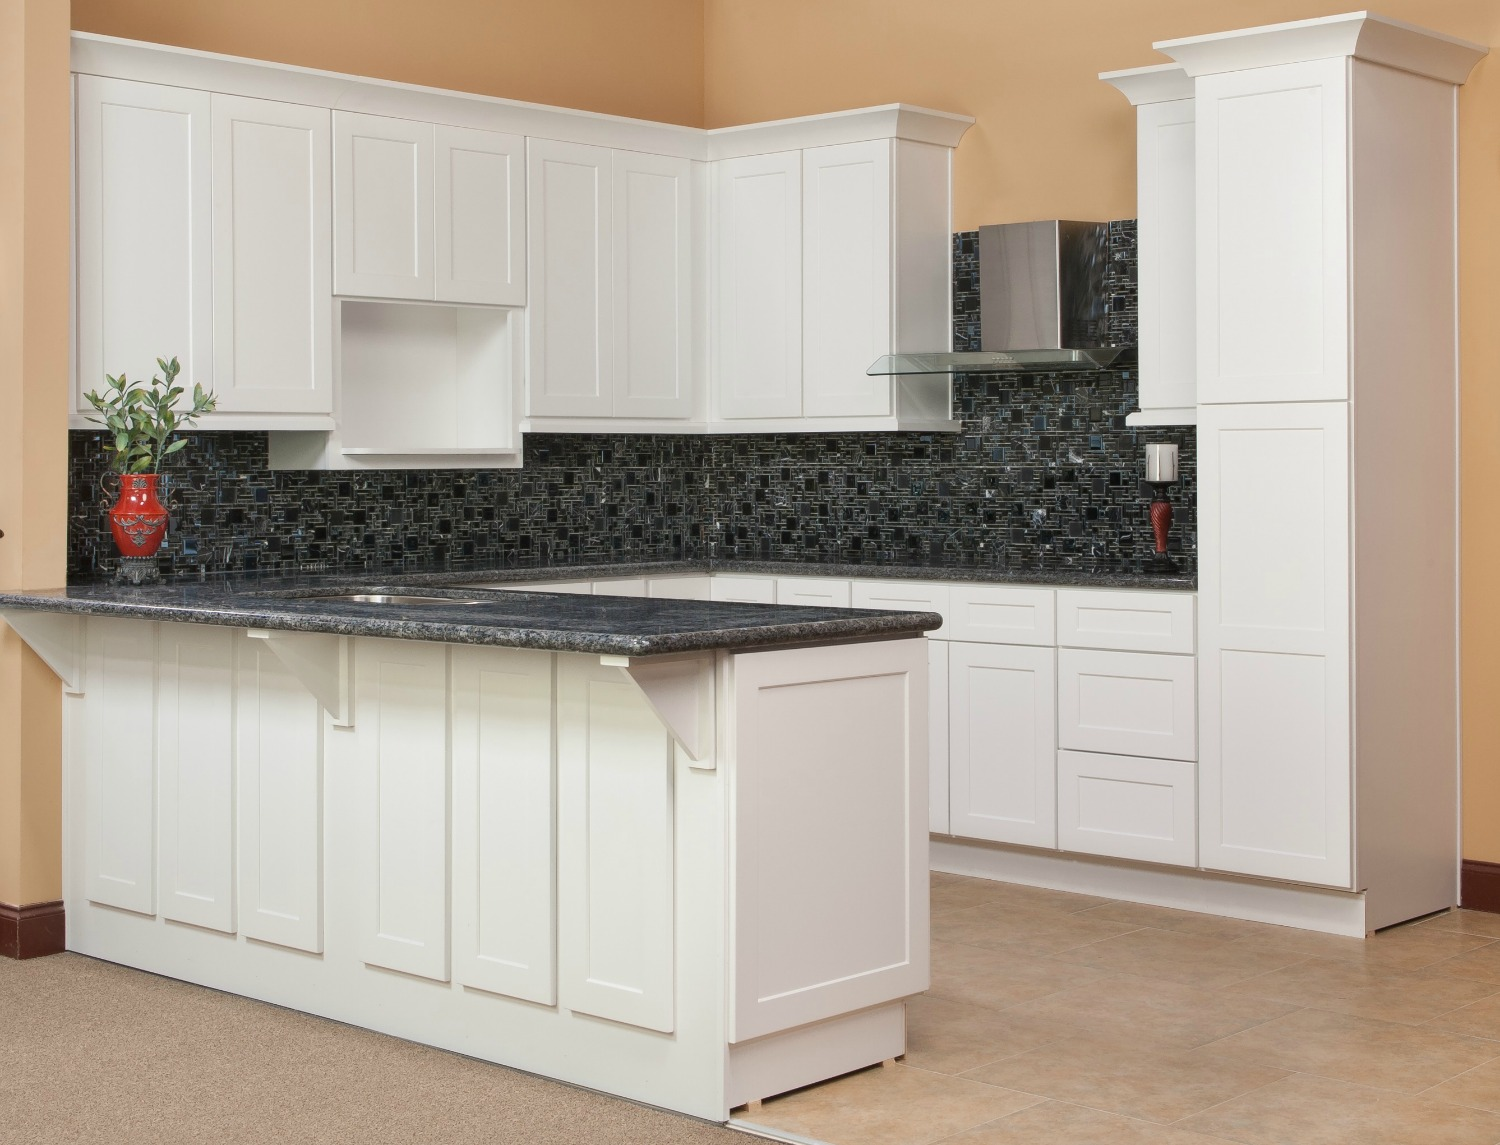 Brilliant white shaker ready to assemble kitchen cabinets for Cabinetry kitchen cabinets